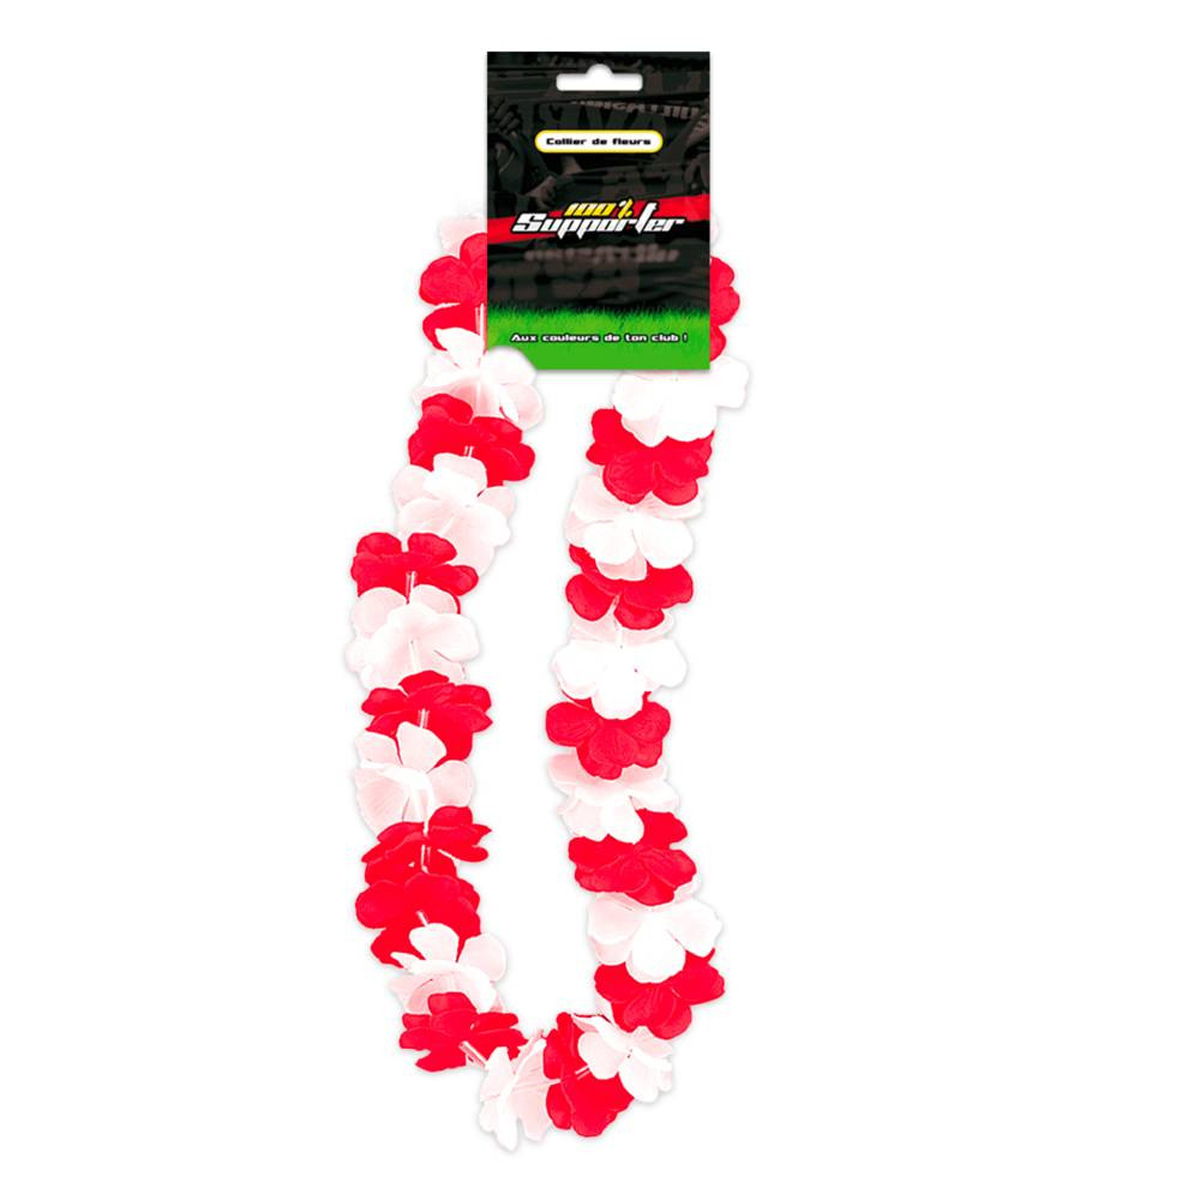 Collier de fleurs \'Coloriage\' rouge blanc (supporter) - 50 cm - [Q7179]